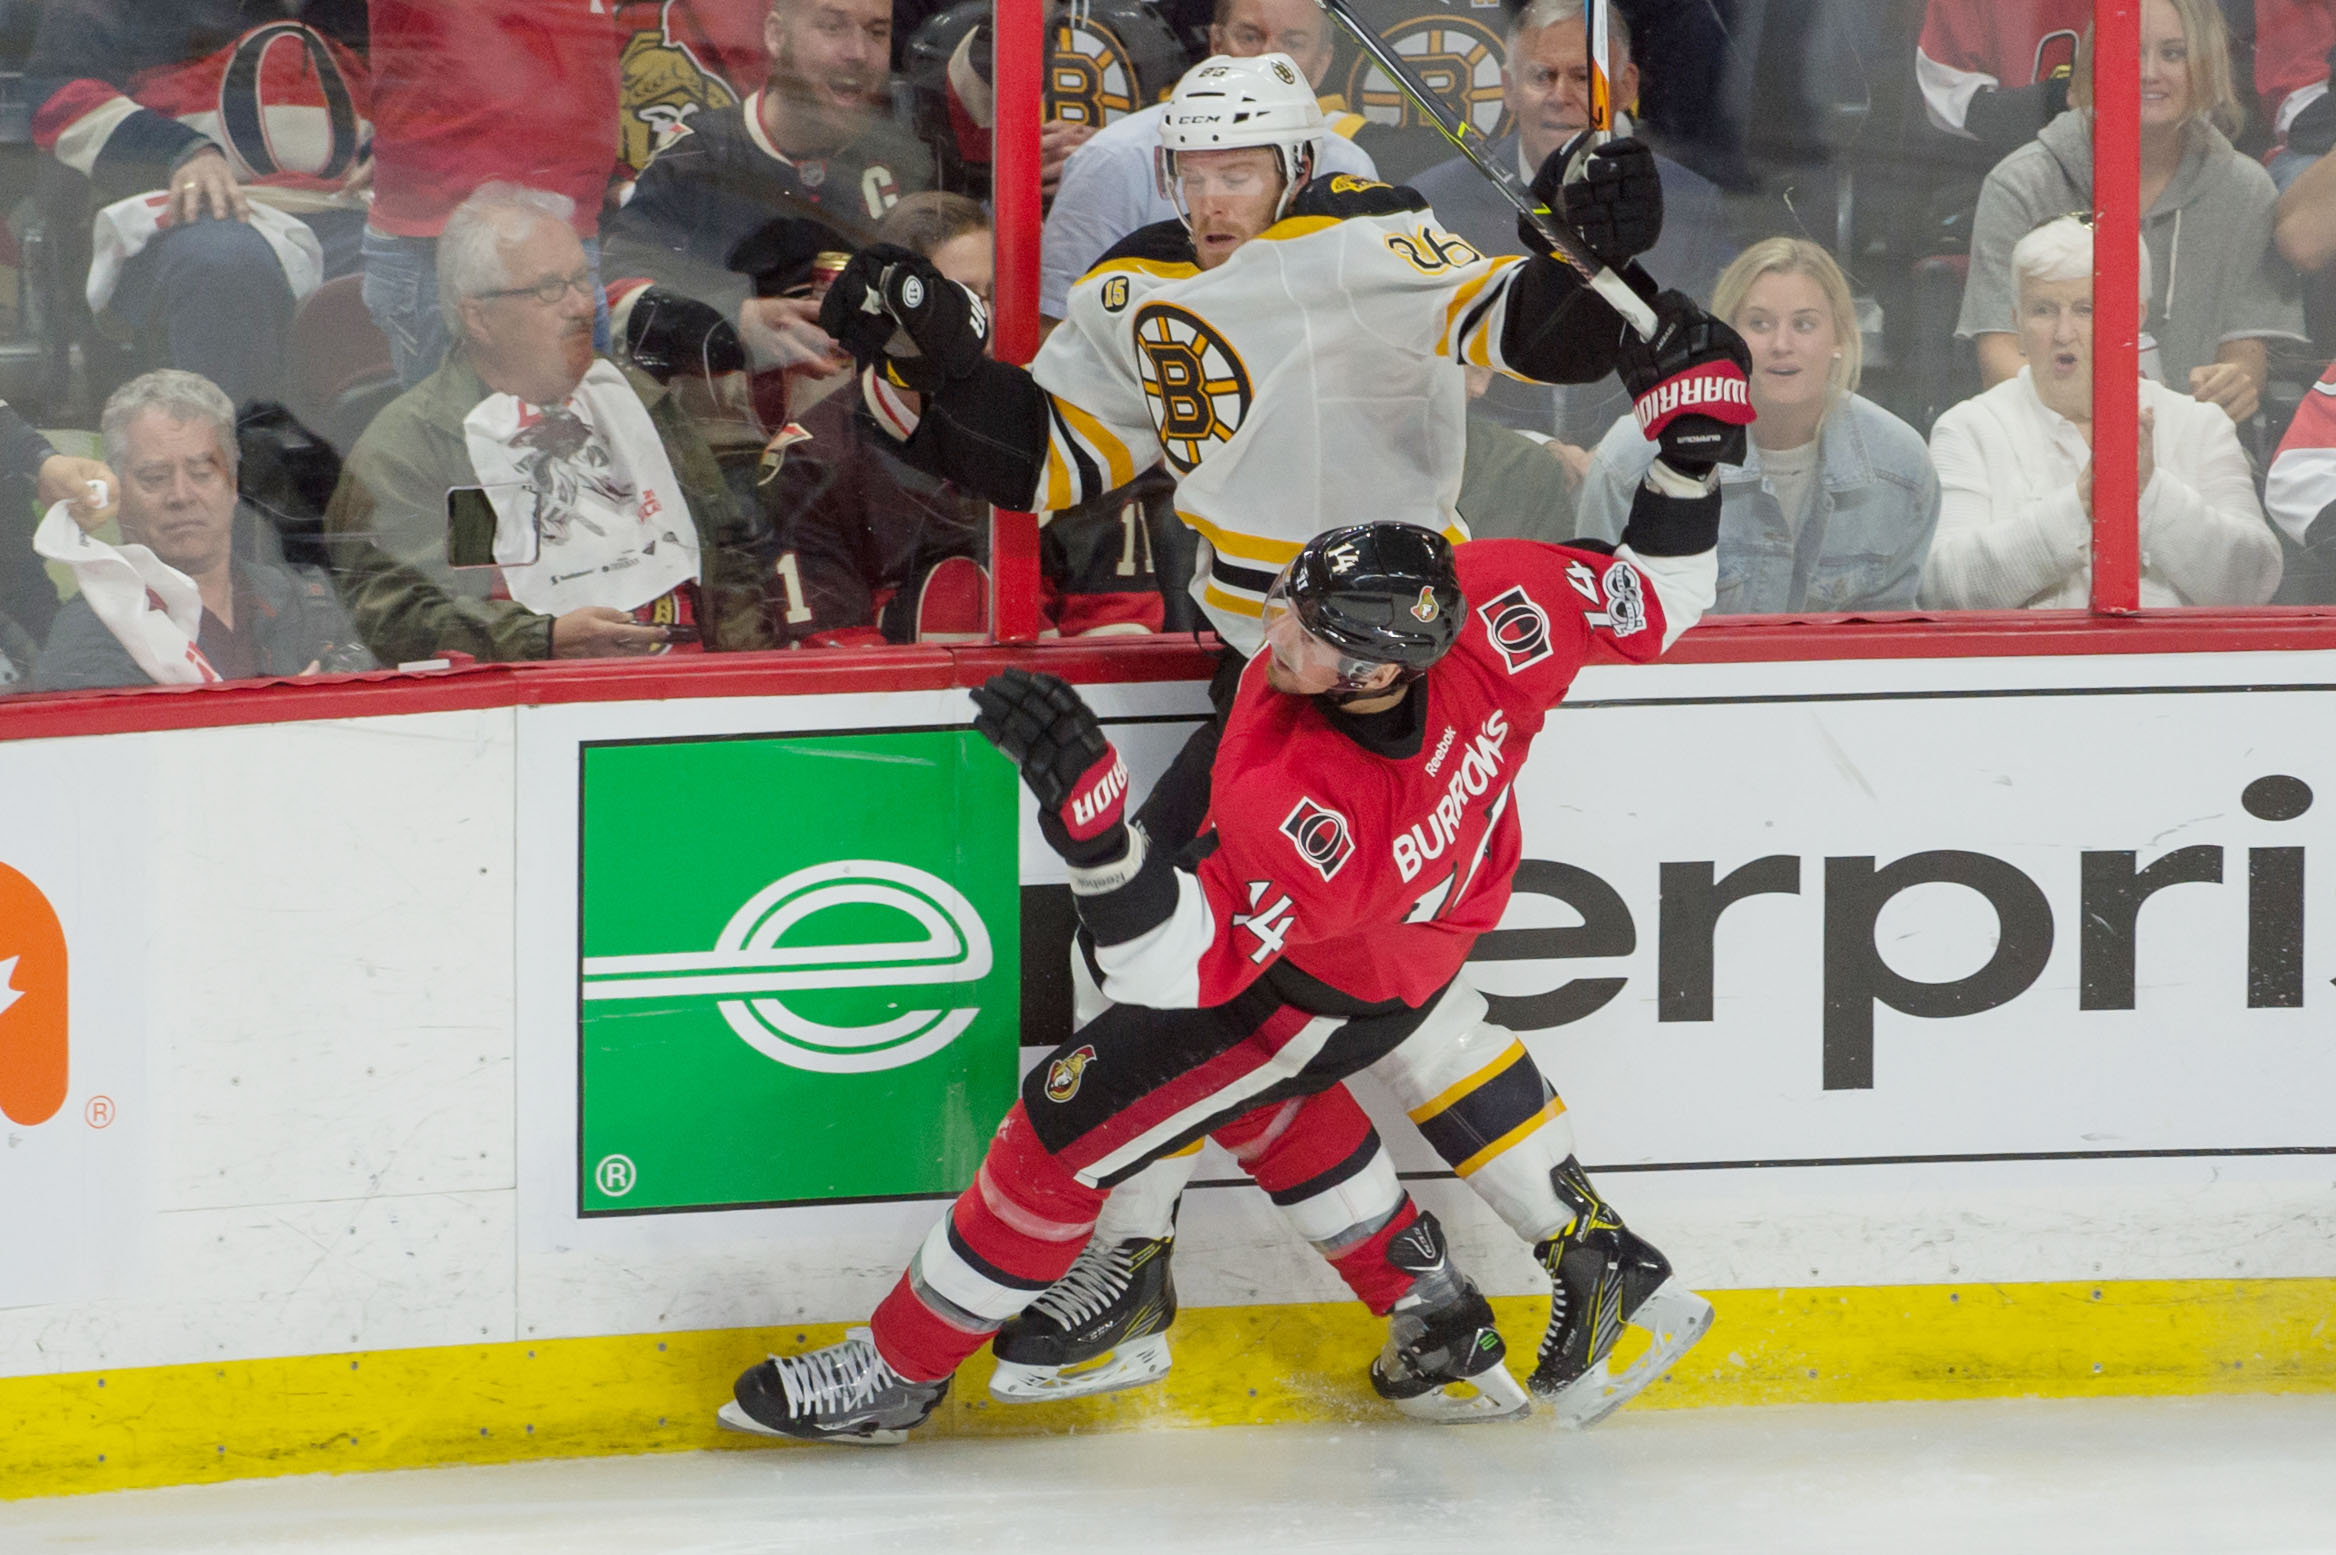 10014335-nhl-boston-bruins-at-ottawa-senators